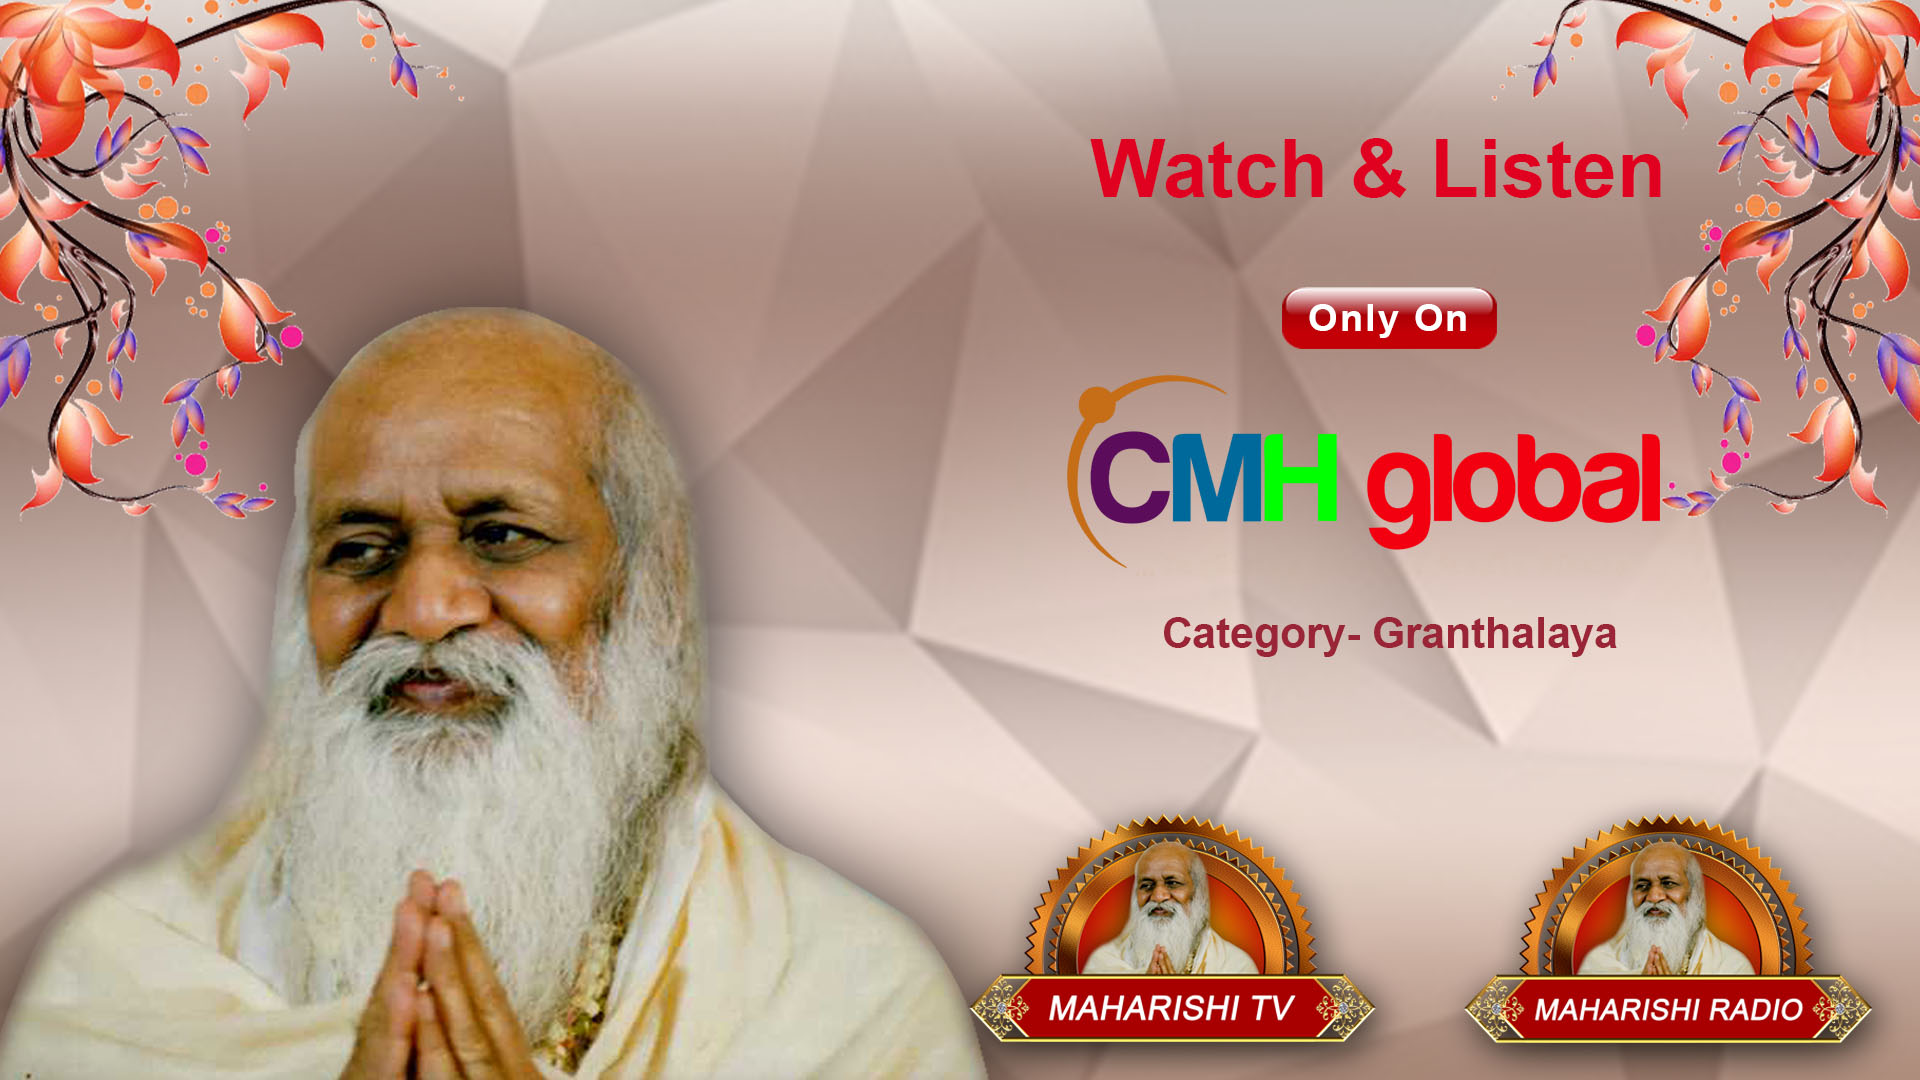 Launching Ceremony of Maharishi Tv, Radio, Newspaper and Magazine on CMH Global.